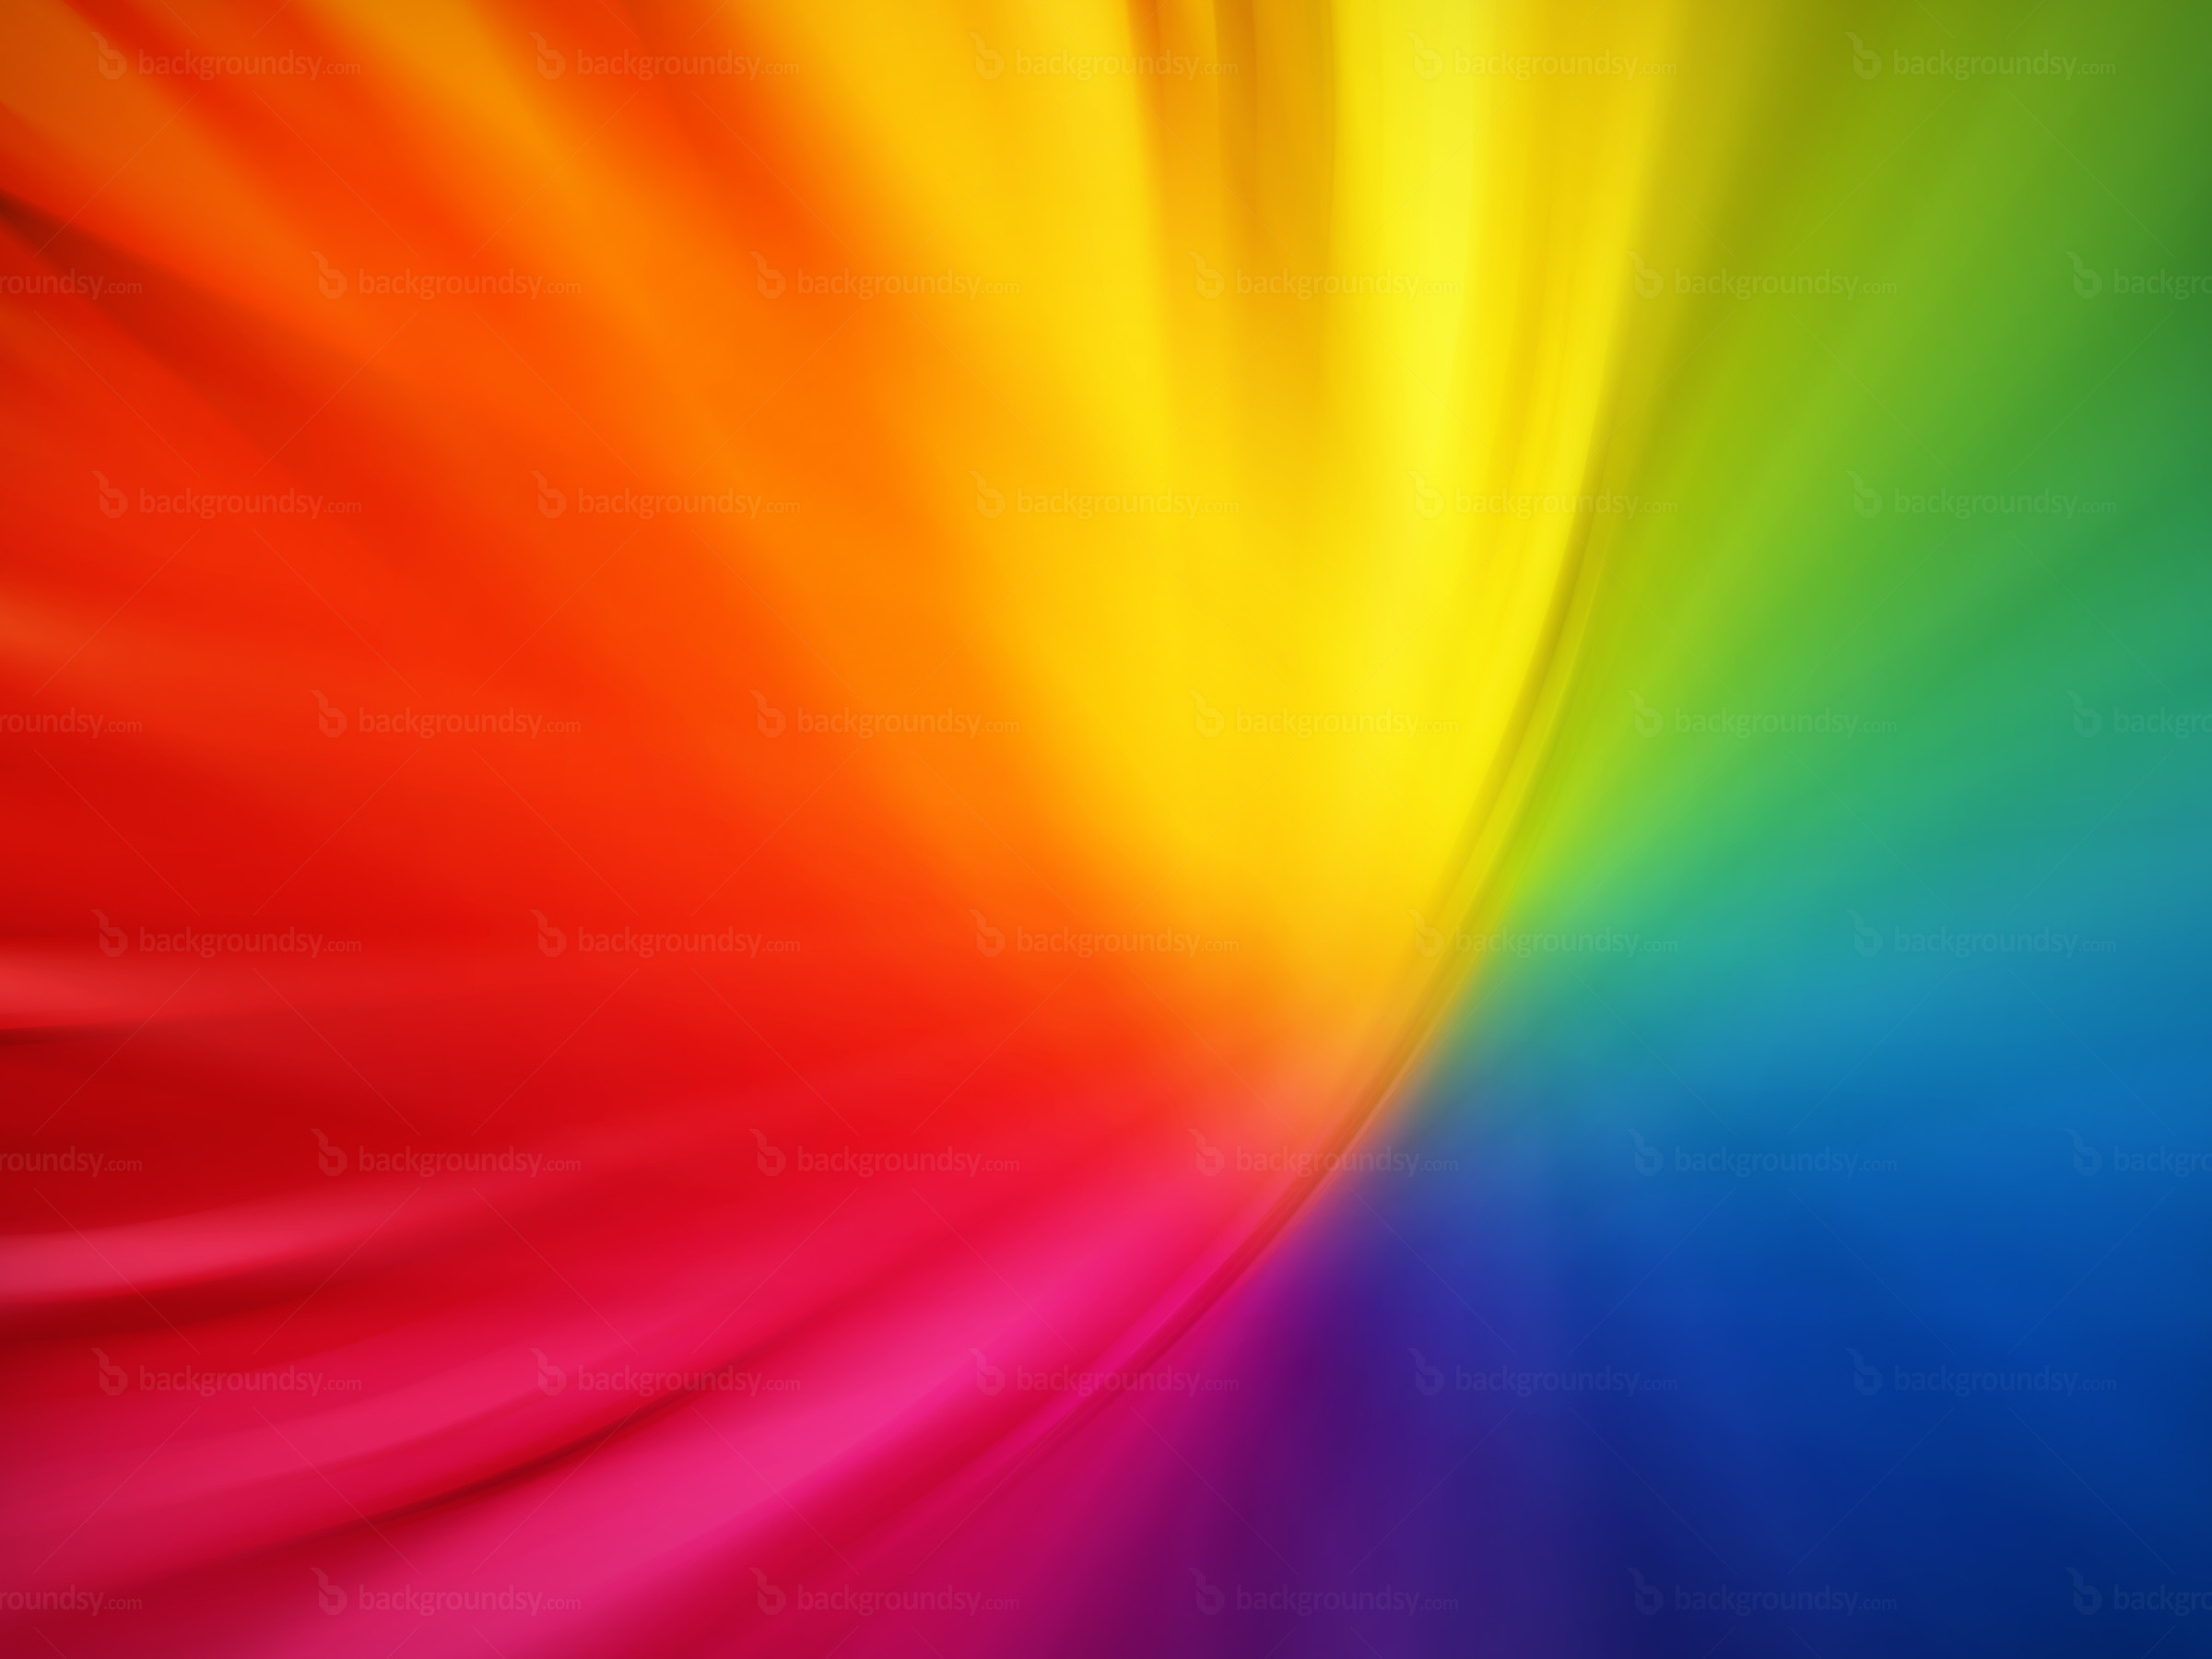 Rainbow Background Wallpaper (61+ Images